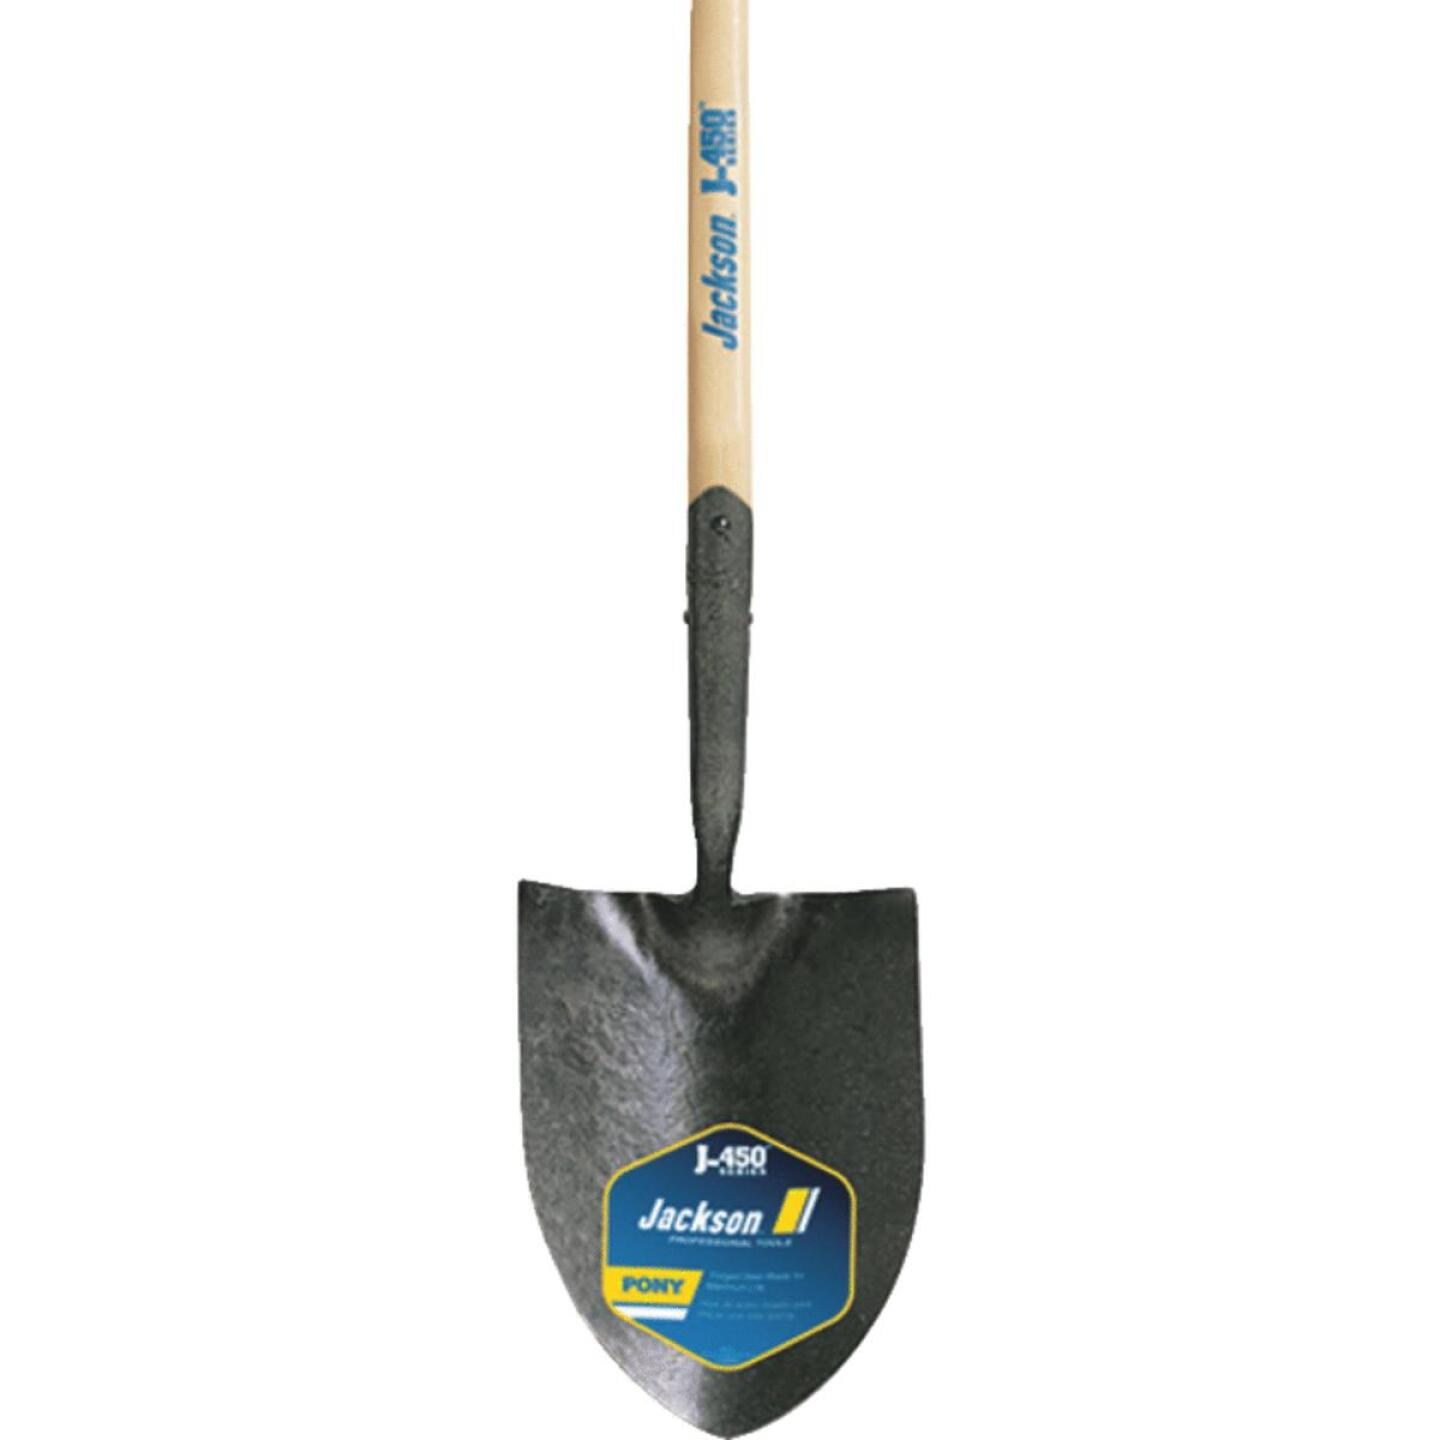 Jackson Pony J-450 Series 47 In. Wood Handle Round Point Contractor Shovel Image 1